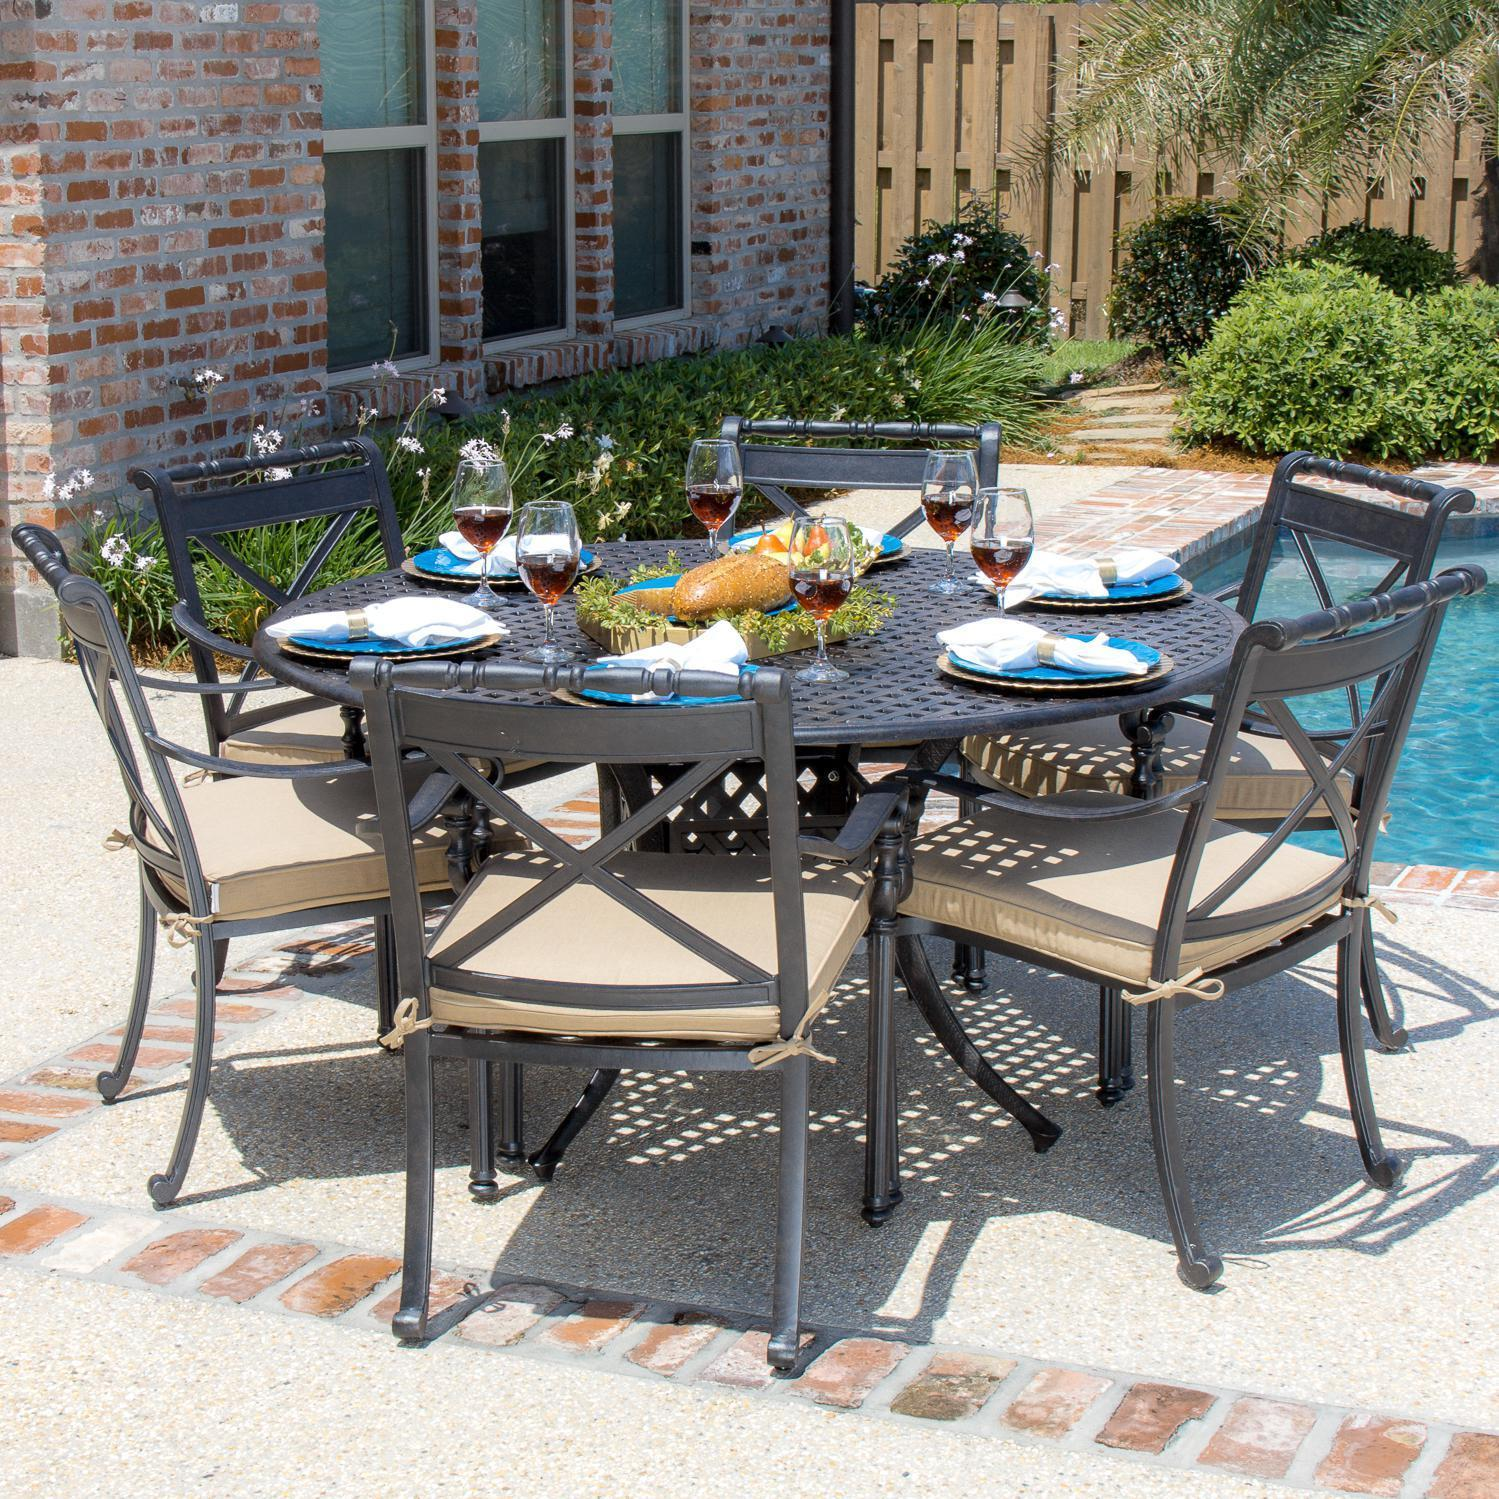 Shop Carrolton 6 Person Cast Aluminum Patio Dining Set With Round Table Overstock 10333459